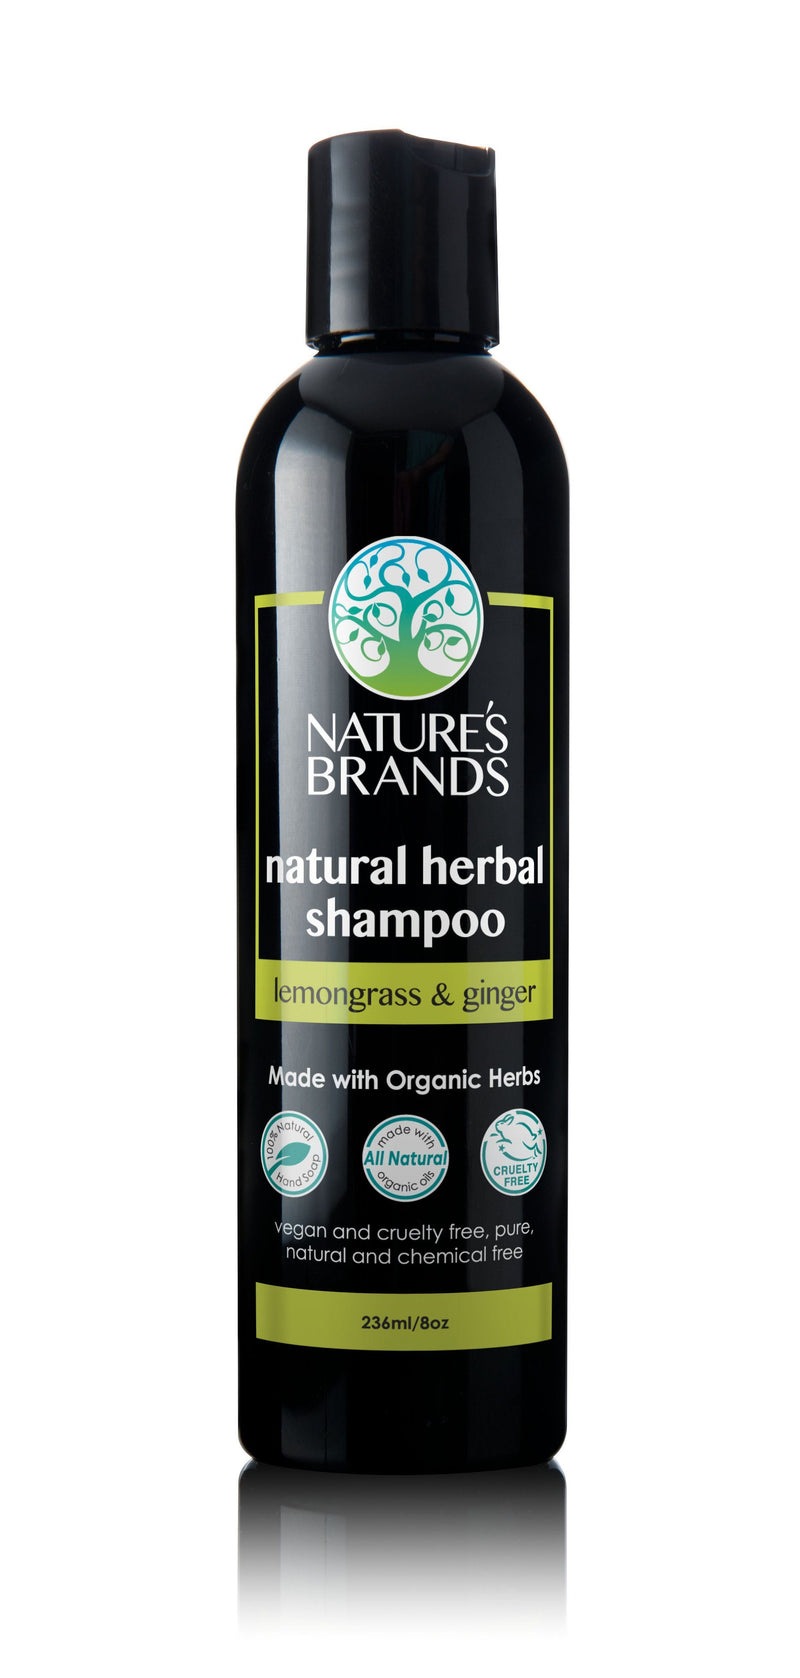 Herbal Choice Mari Natural Shampoo, Lemongrass And Ginger; Made with Organic - Herbal Choice Mari Natural Shampoo, Lemongrass And Ginger; Made with Organic - 8floz